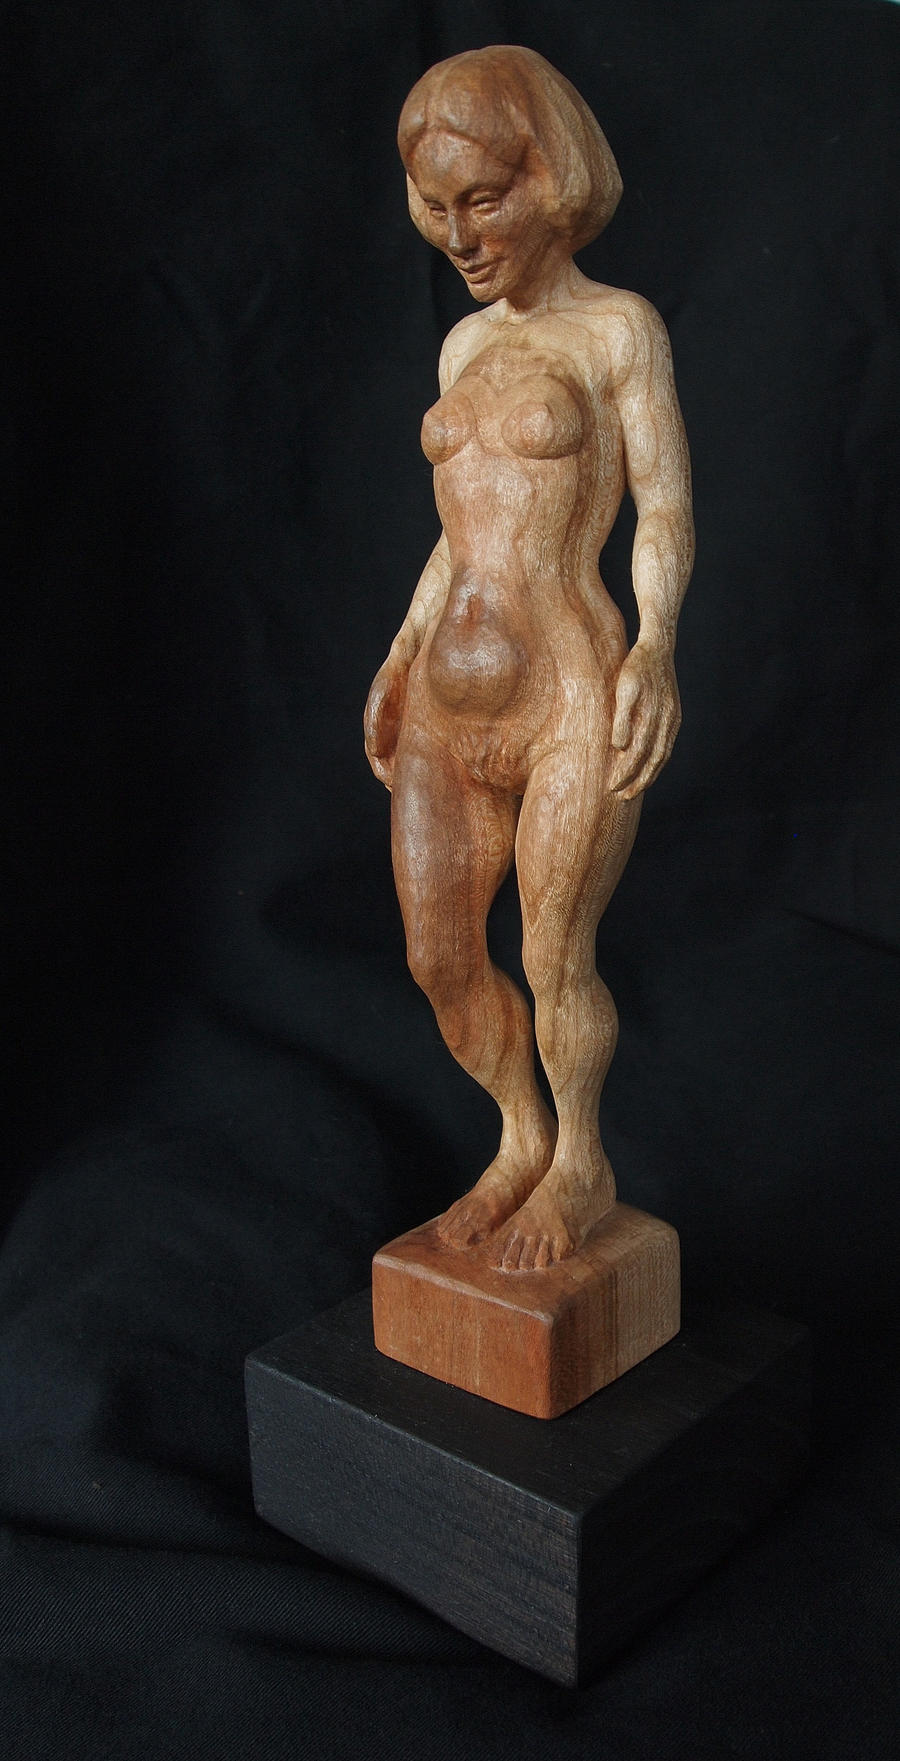 Another Untitled Figure by asantell